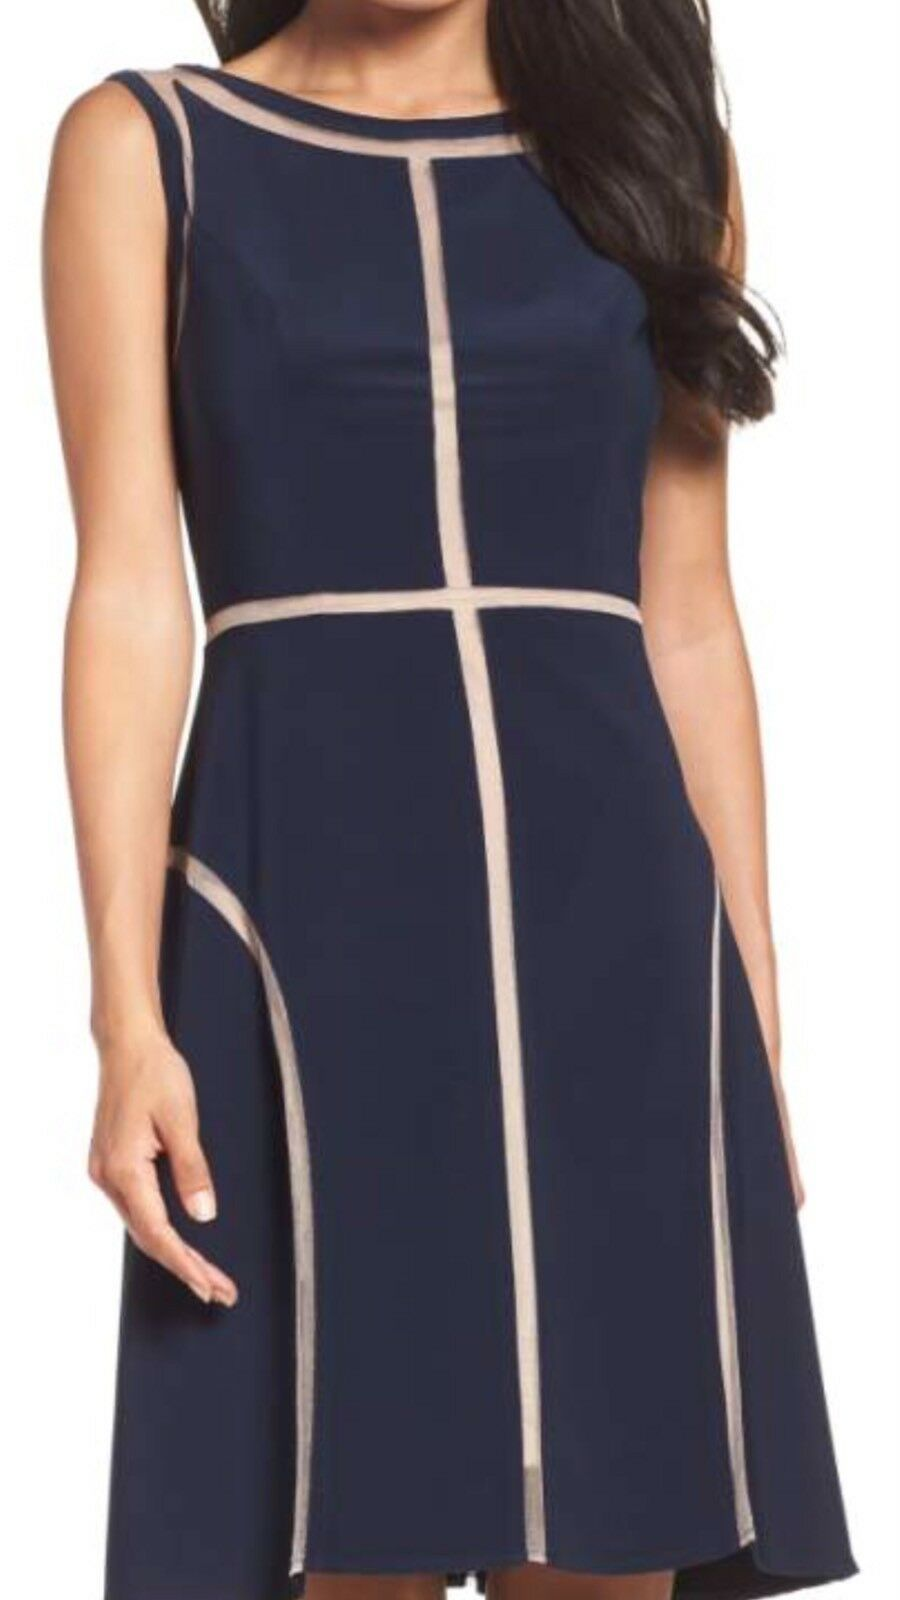 ADRIANNA PAPELL DRESS  NEW WITH TAG SIZE 8 RETAIL  NAVY NORDSTORM DRESS